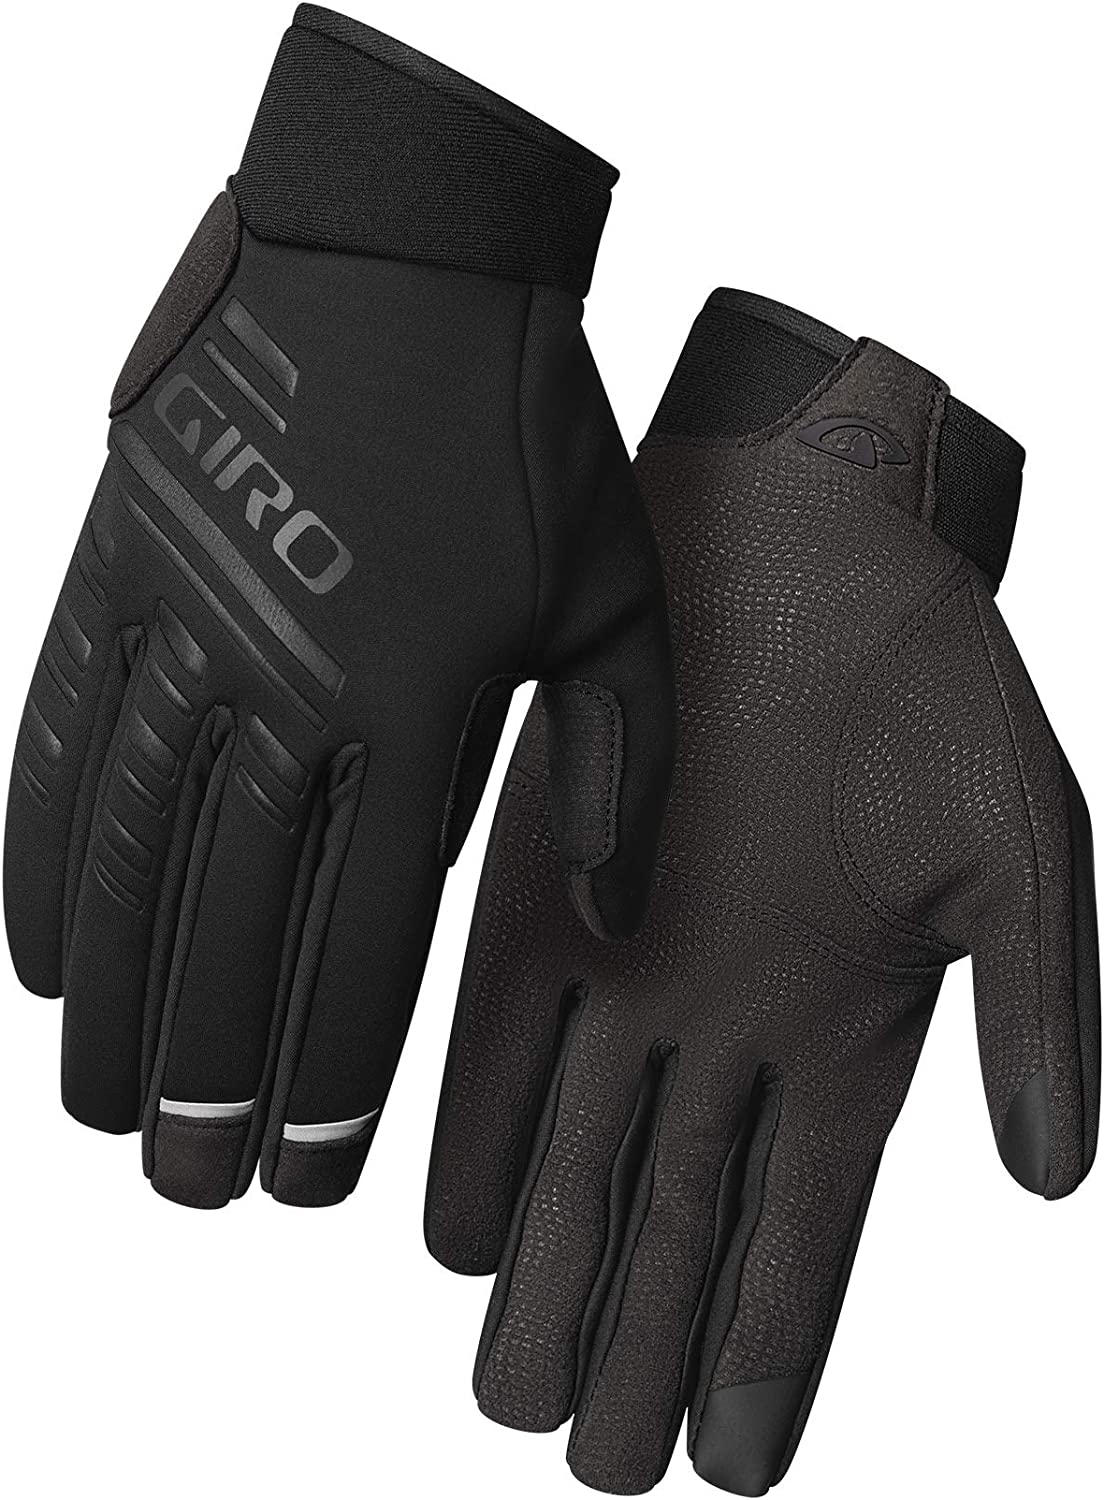 Giro Cascade W Adult 40% OFF Cheap Sale Womens Cycling Max 58% OFF Gloves Winter